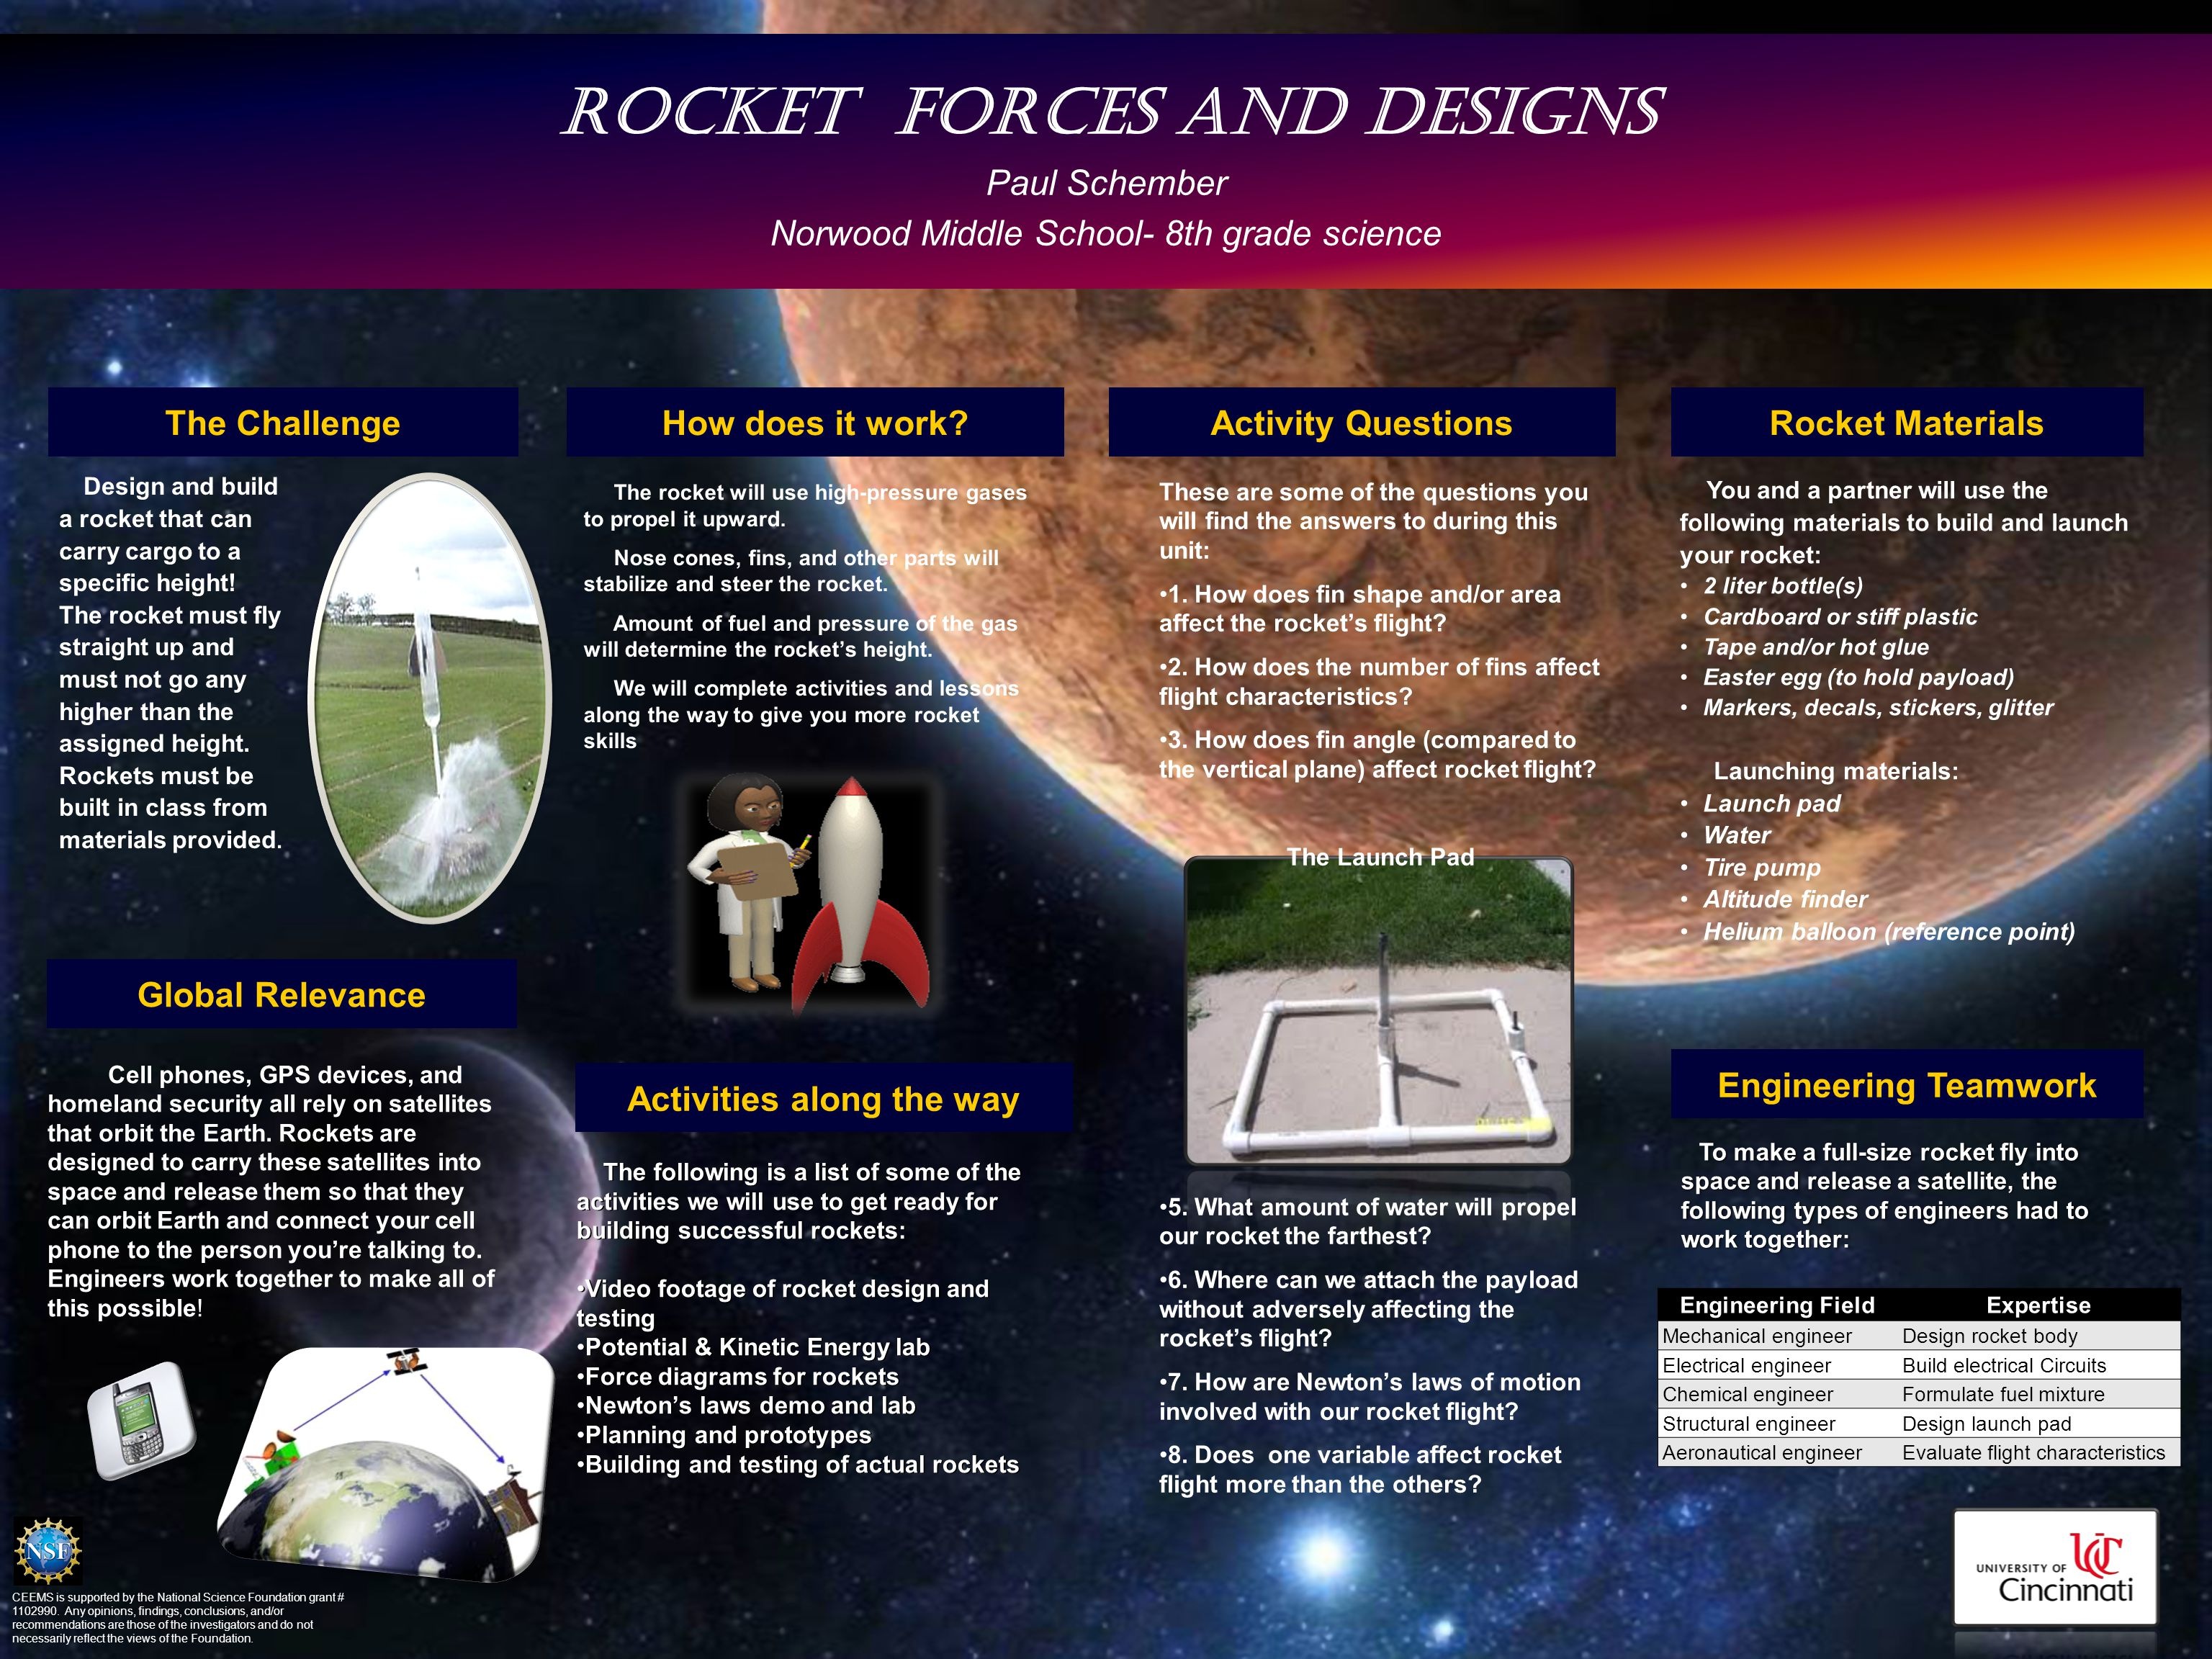 Rocket forces and designs Paul Schember Norwood Middle School- 8th grade science The ChallengeHow does it work?Activity Questions Global Relevance Activities along the way Rocket Materials Engineering Teamwork The following is a list of some of the activities we will use to get ready for building successful rockets: Video footage of rocket design and testing Potential & Kinetic Energy lab Force diagrams for rockets Newton's laws demo and lab Planning and prototypes Building and testing of actual rockets The following is a list of some of the activities we will use to get ready for building successful rockets: Video footage of rocket design and testing Potential & Kinetic Energy lab Force diagrams for rockets Newton's laws demo and lab Planning and prototypes Building and testing of actual rockets To make a full-size rocket fly into space and release a satellite, the following types of engineers had to work together: These are some of the questions you will find the answers to during this unit: 1.